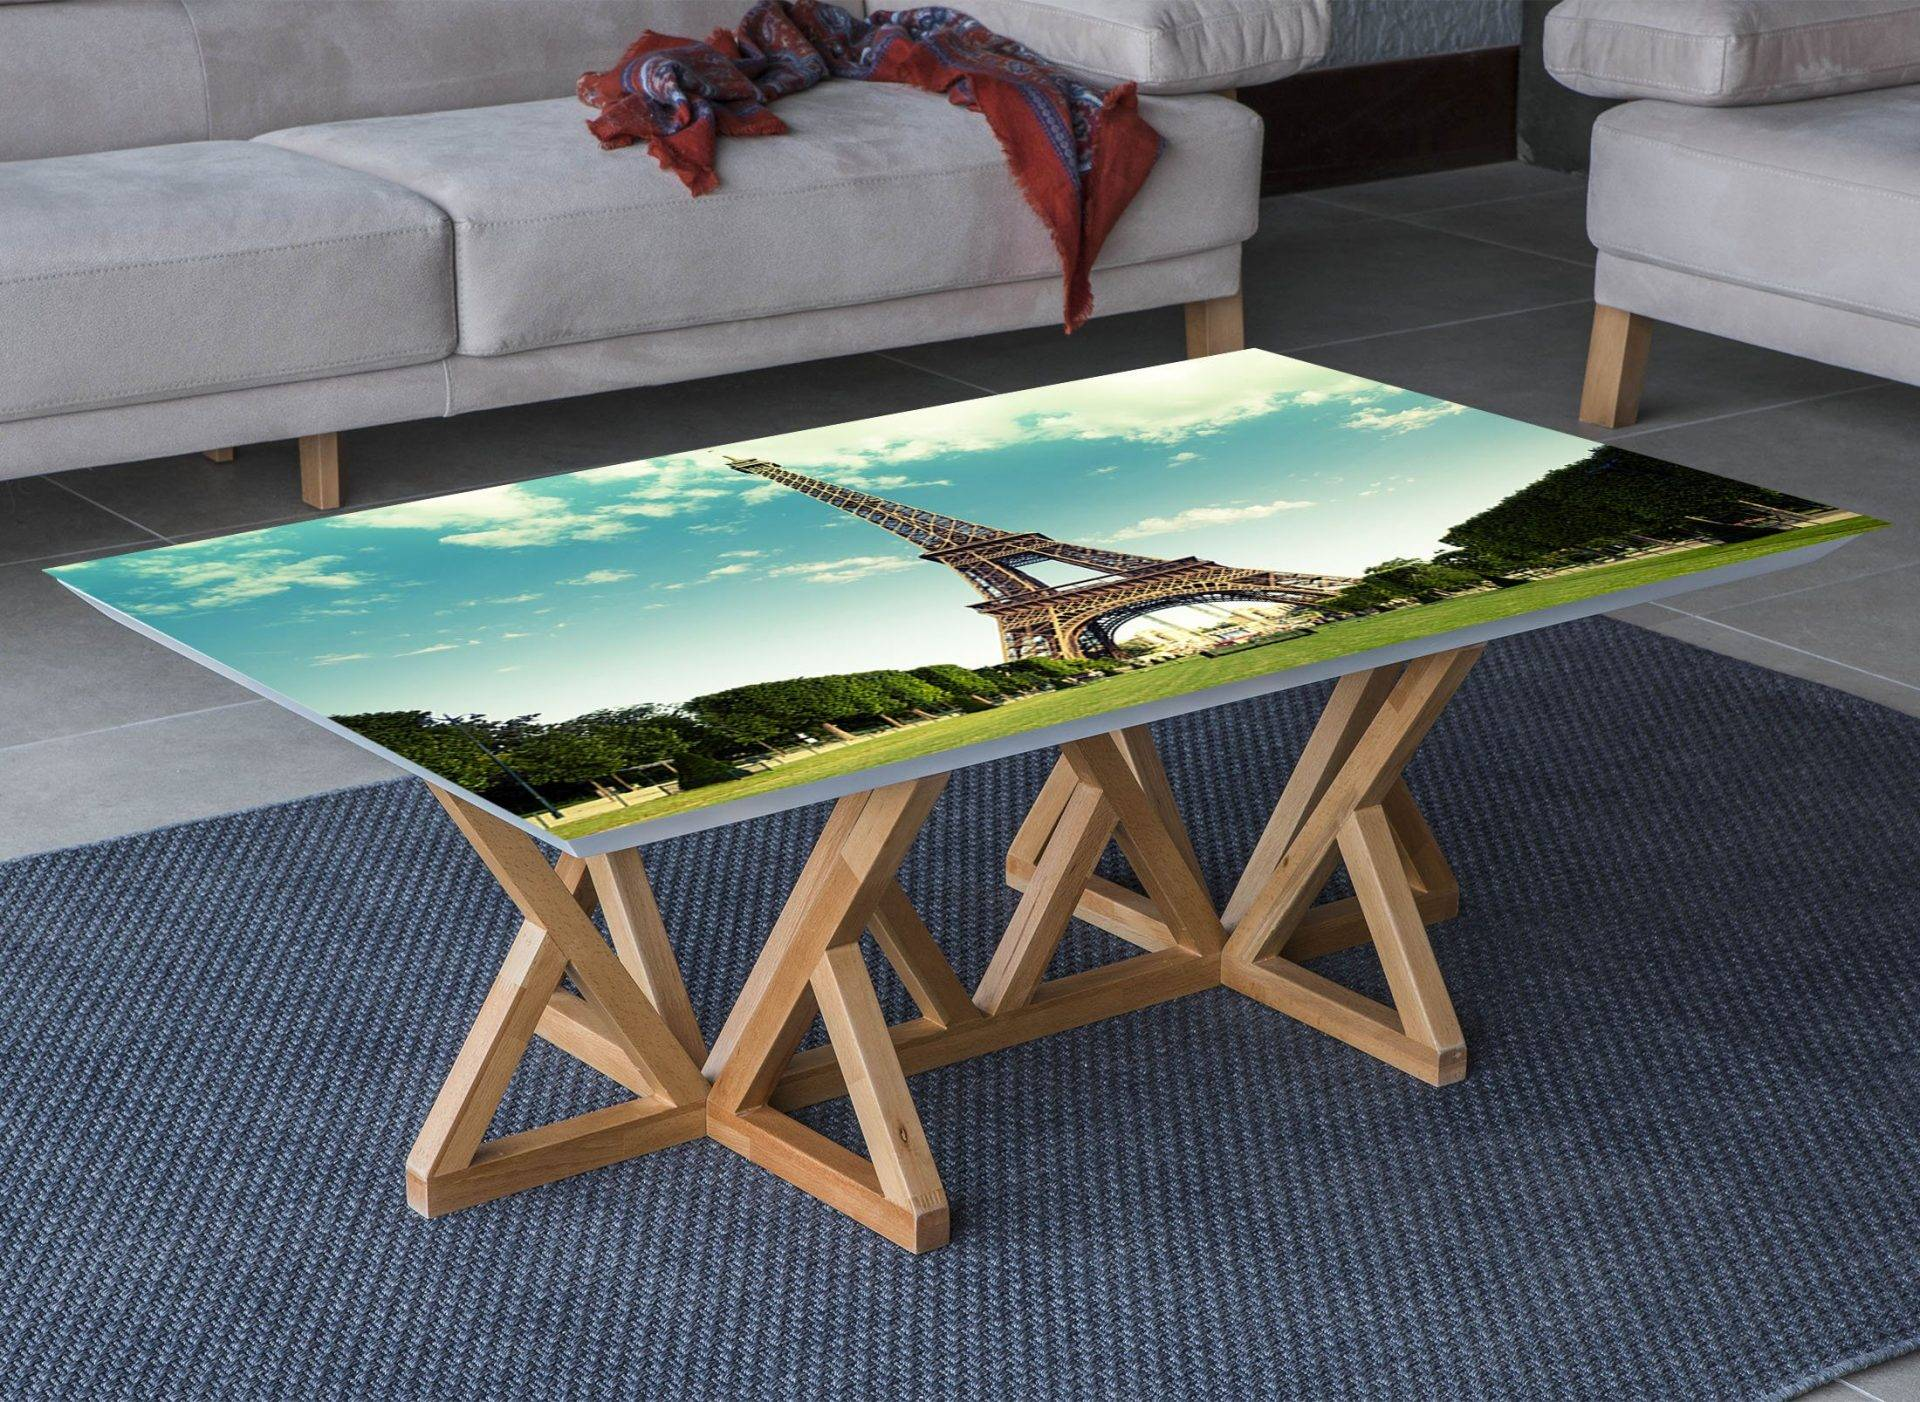 Eiffel Tower View Laminated Vinyl Cover Self-Adhesive for Desk and Tables